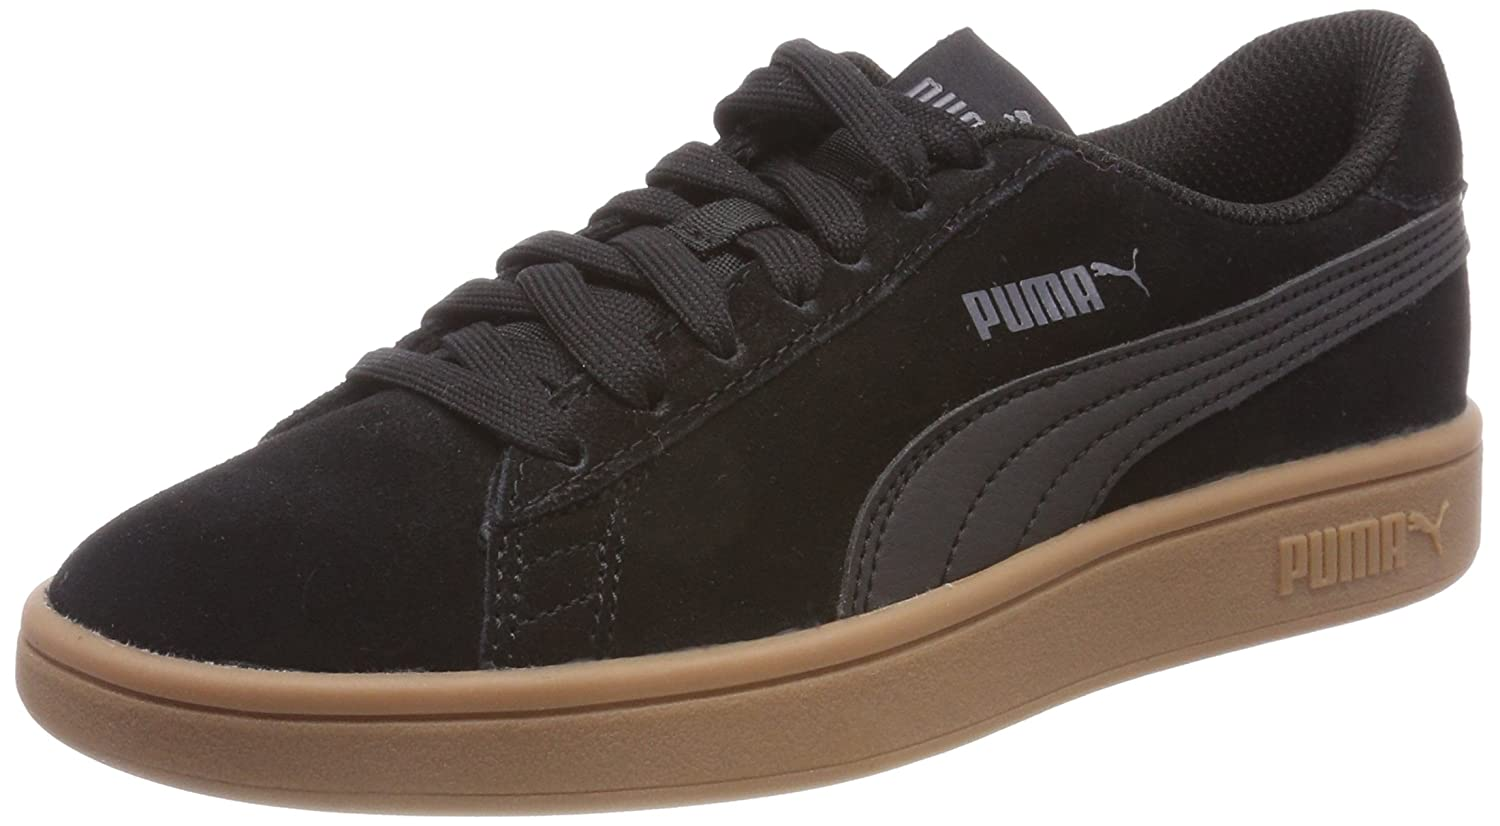 TALLA 41 EU. Puma Smash V2, Zapatillas Unisex Adulto